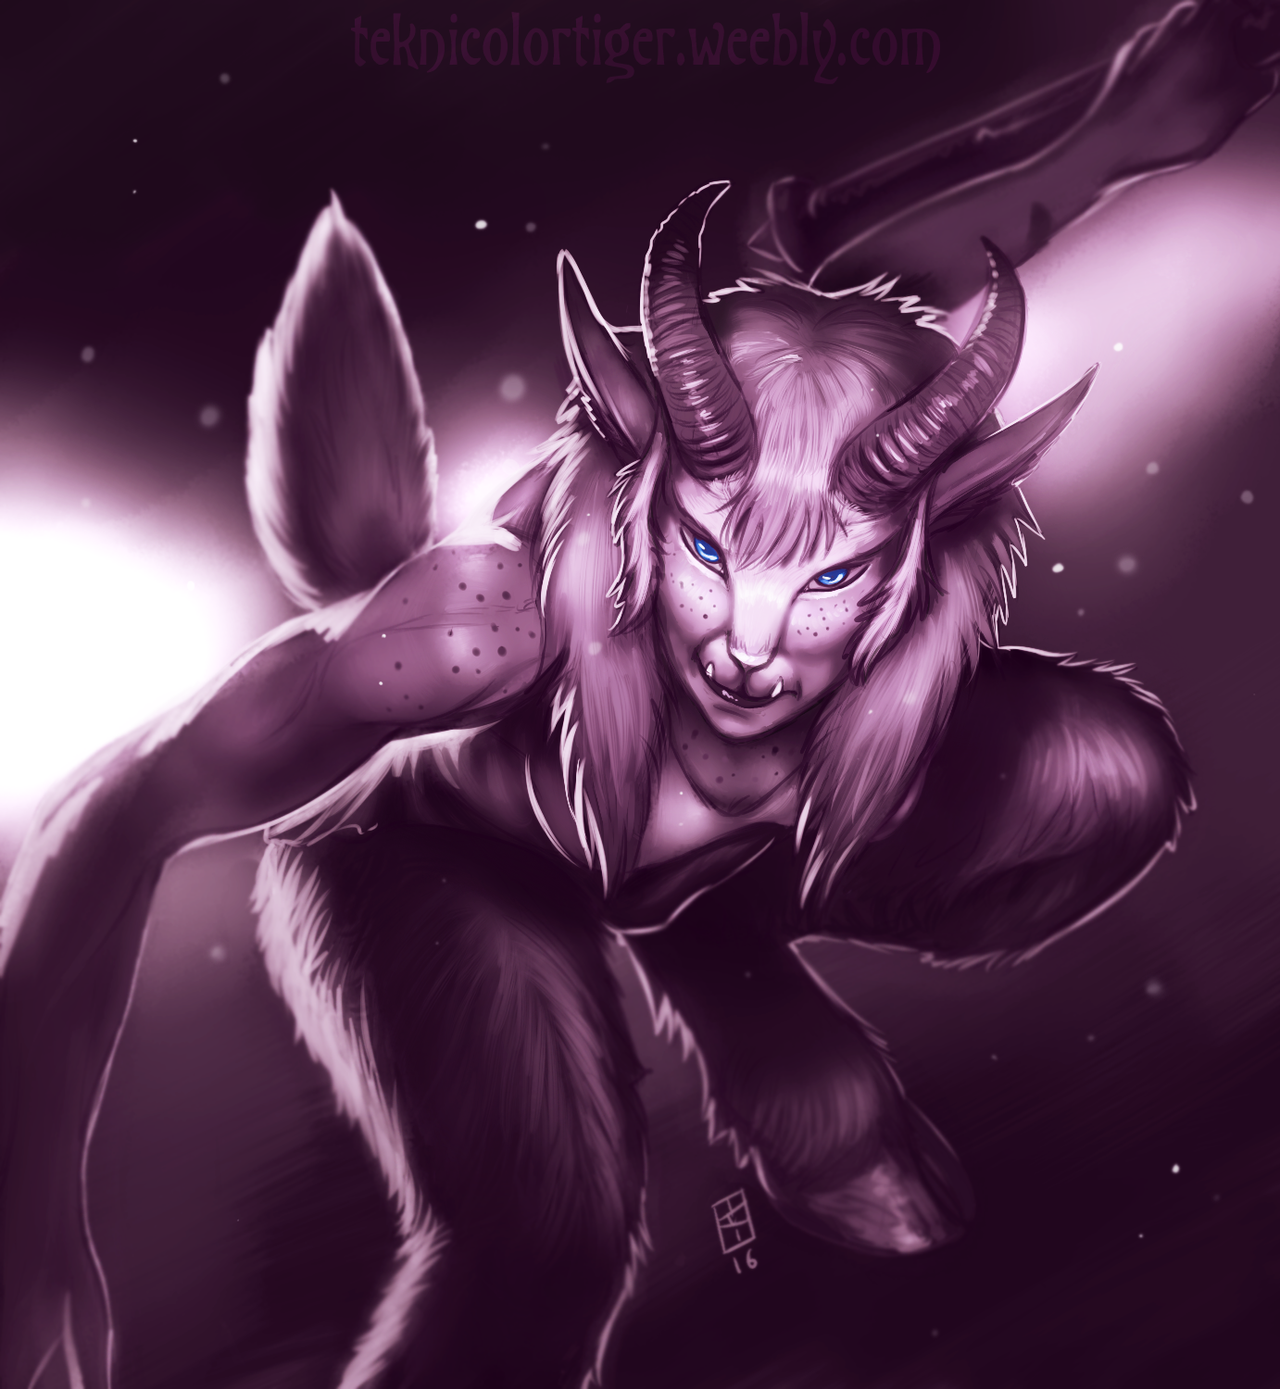 Shaded Sketch: Hoofer the Satyr by TeknicolorTiger